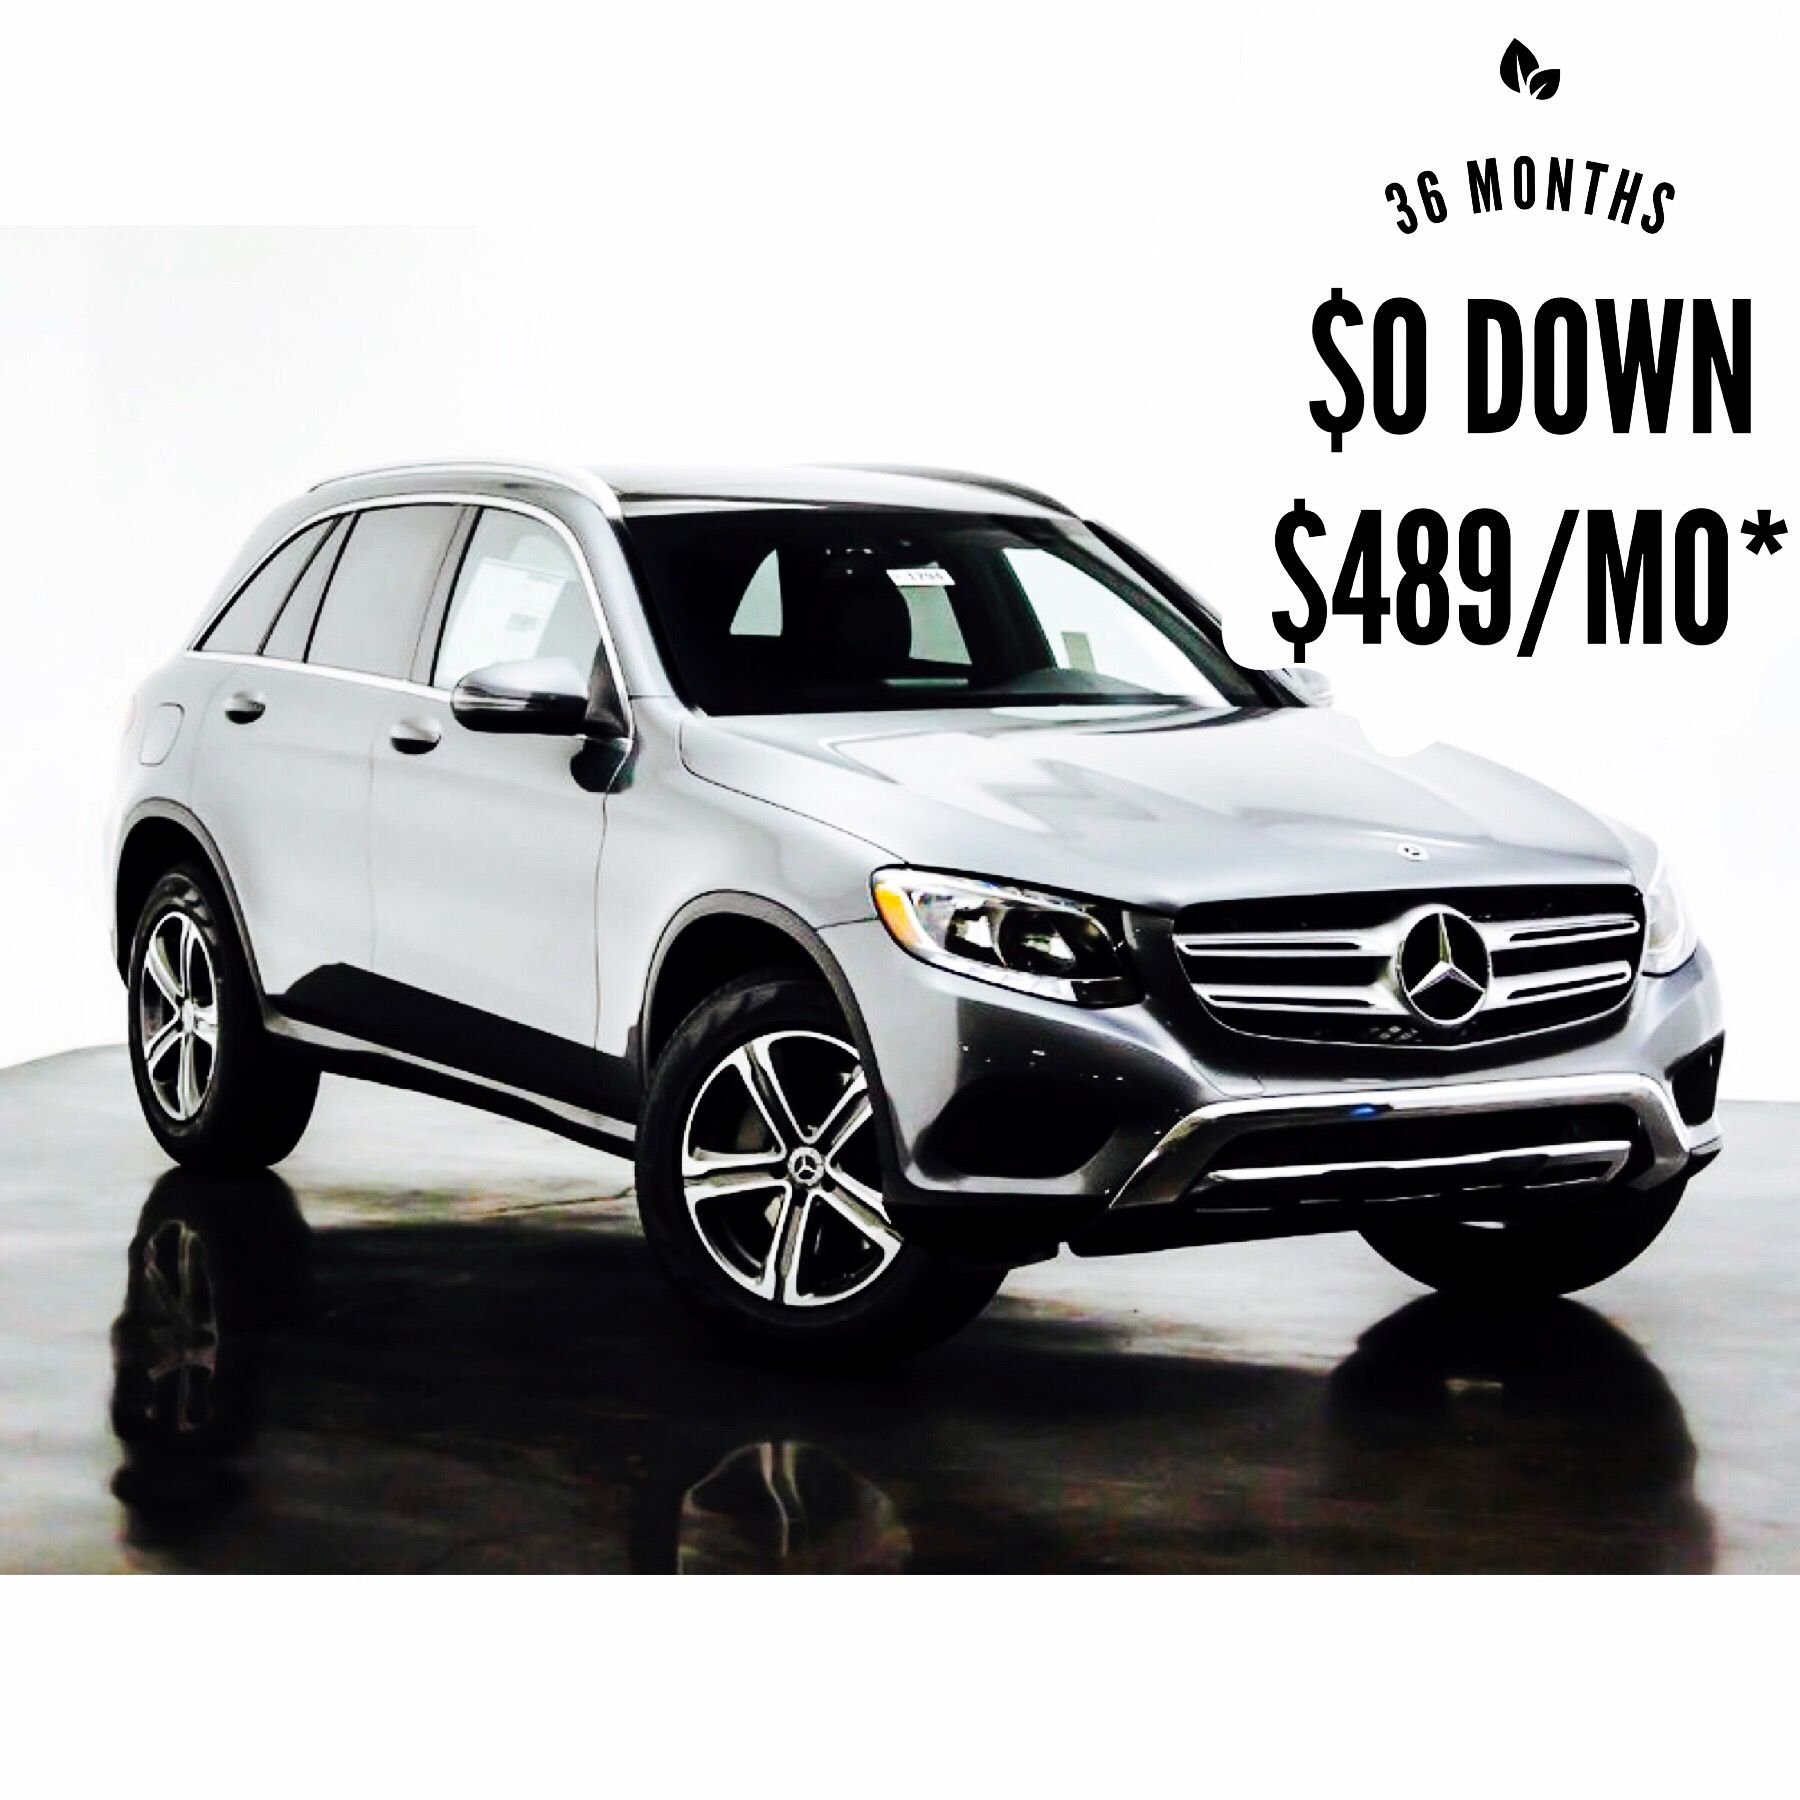 Check Out This Big Summer Special We Have On A 2019 Mercedes Benz